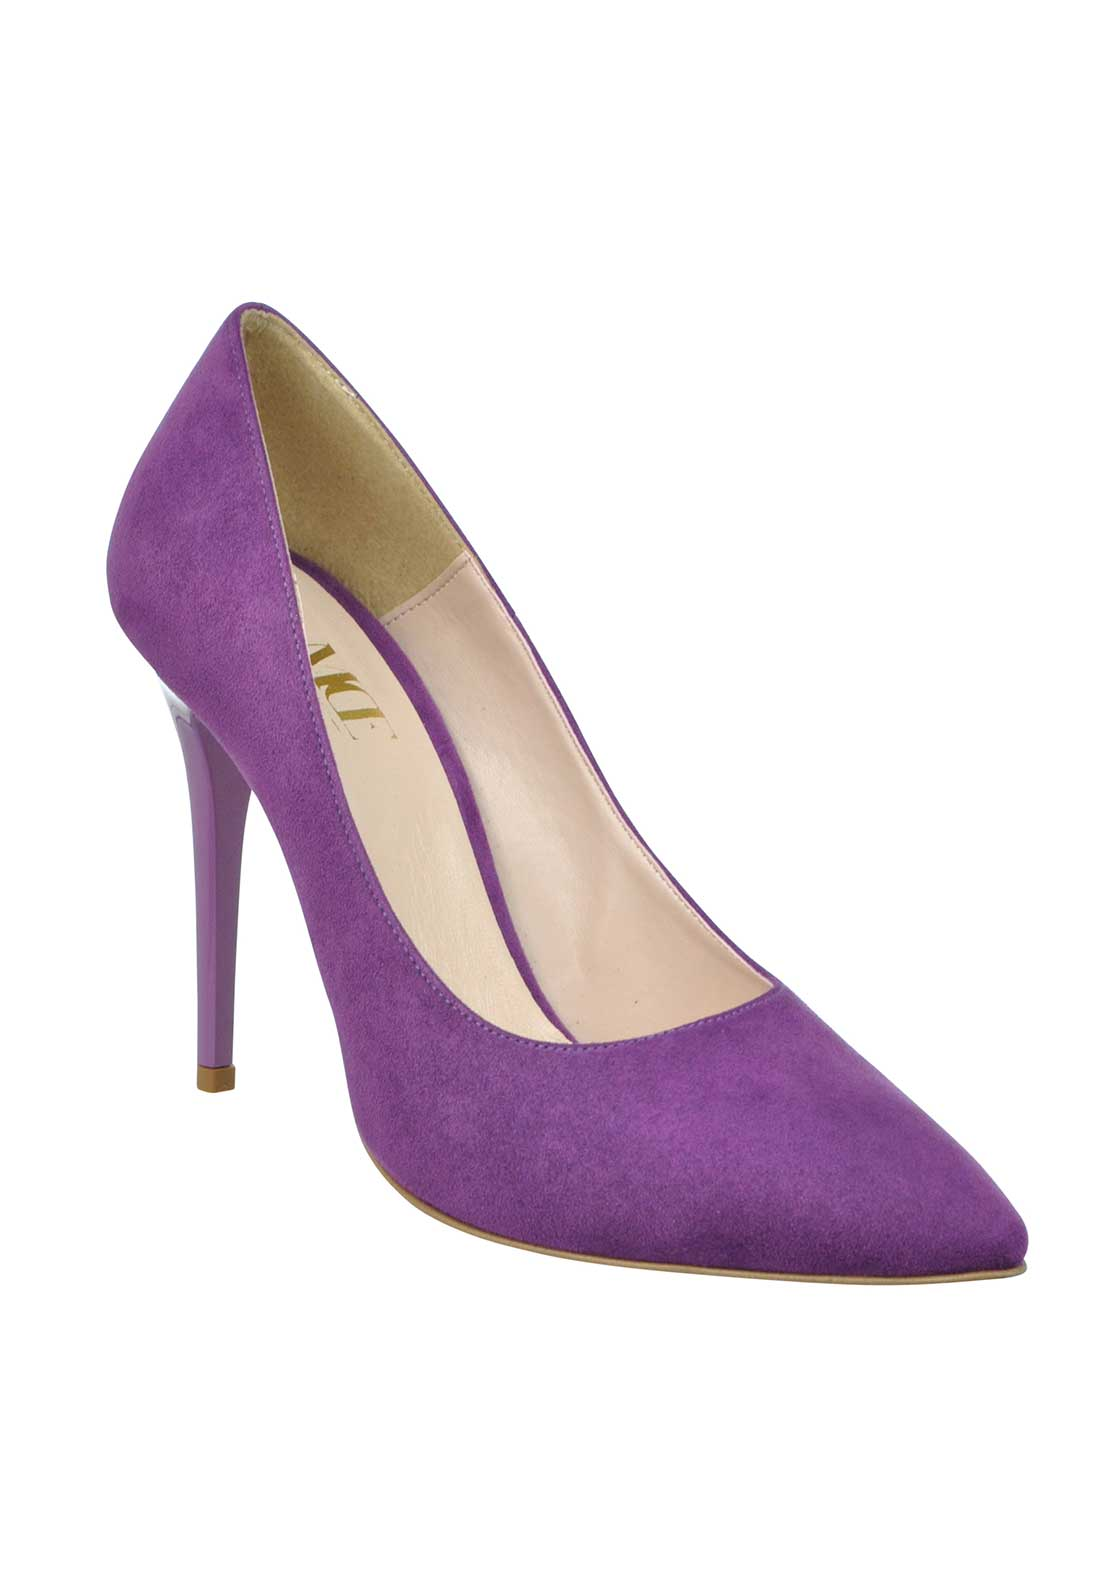 McElhinney's Faux Suede Pointed Toe Heeled Shoes, Violet